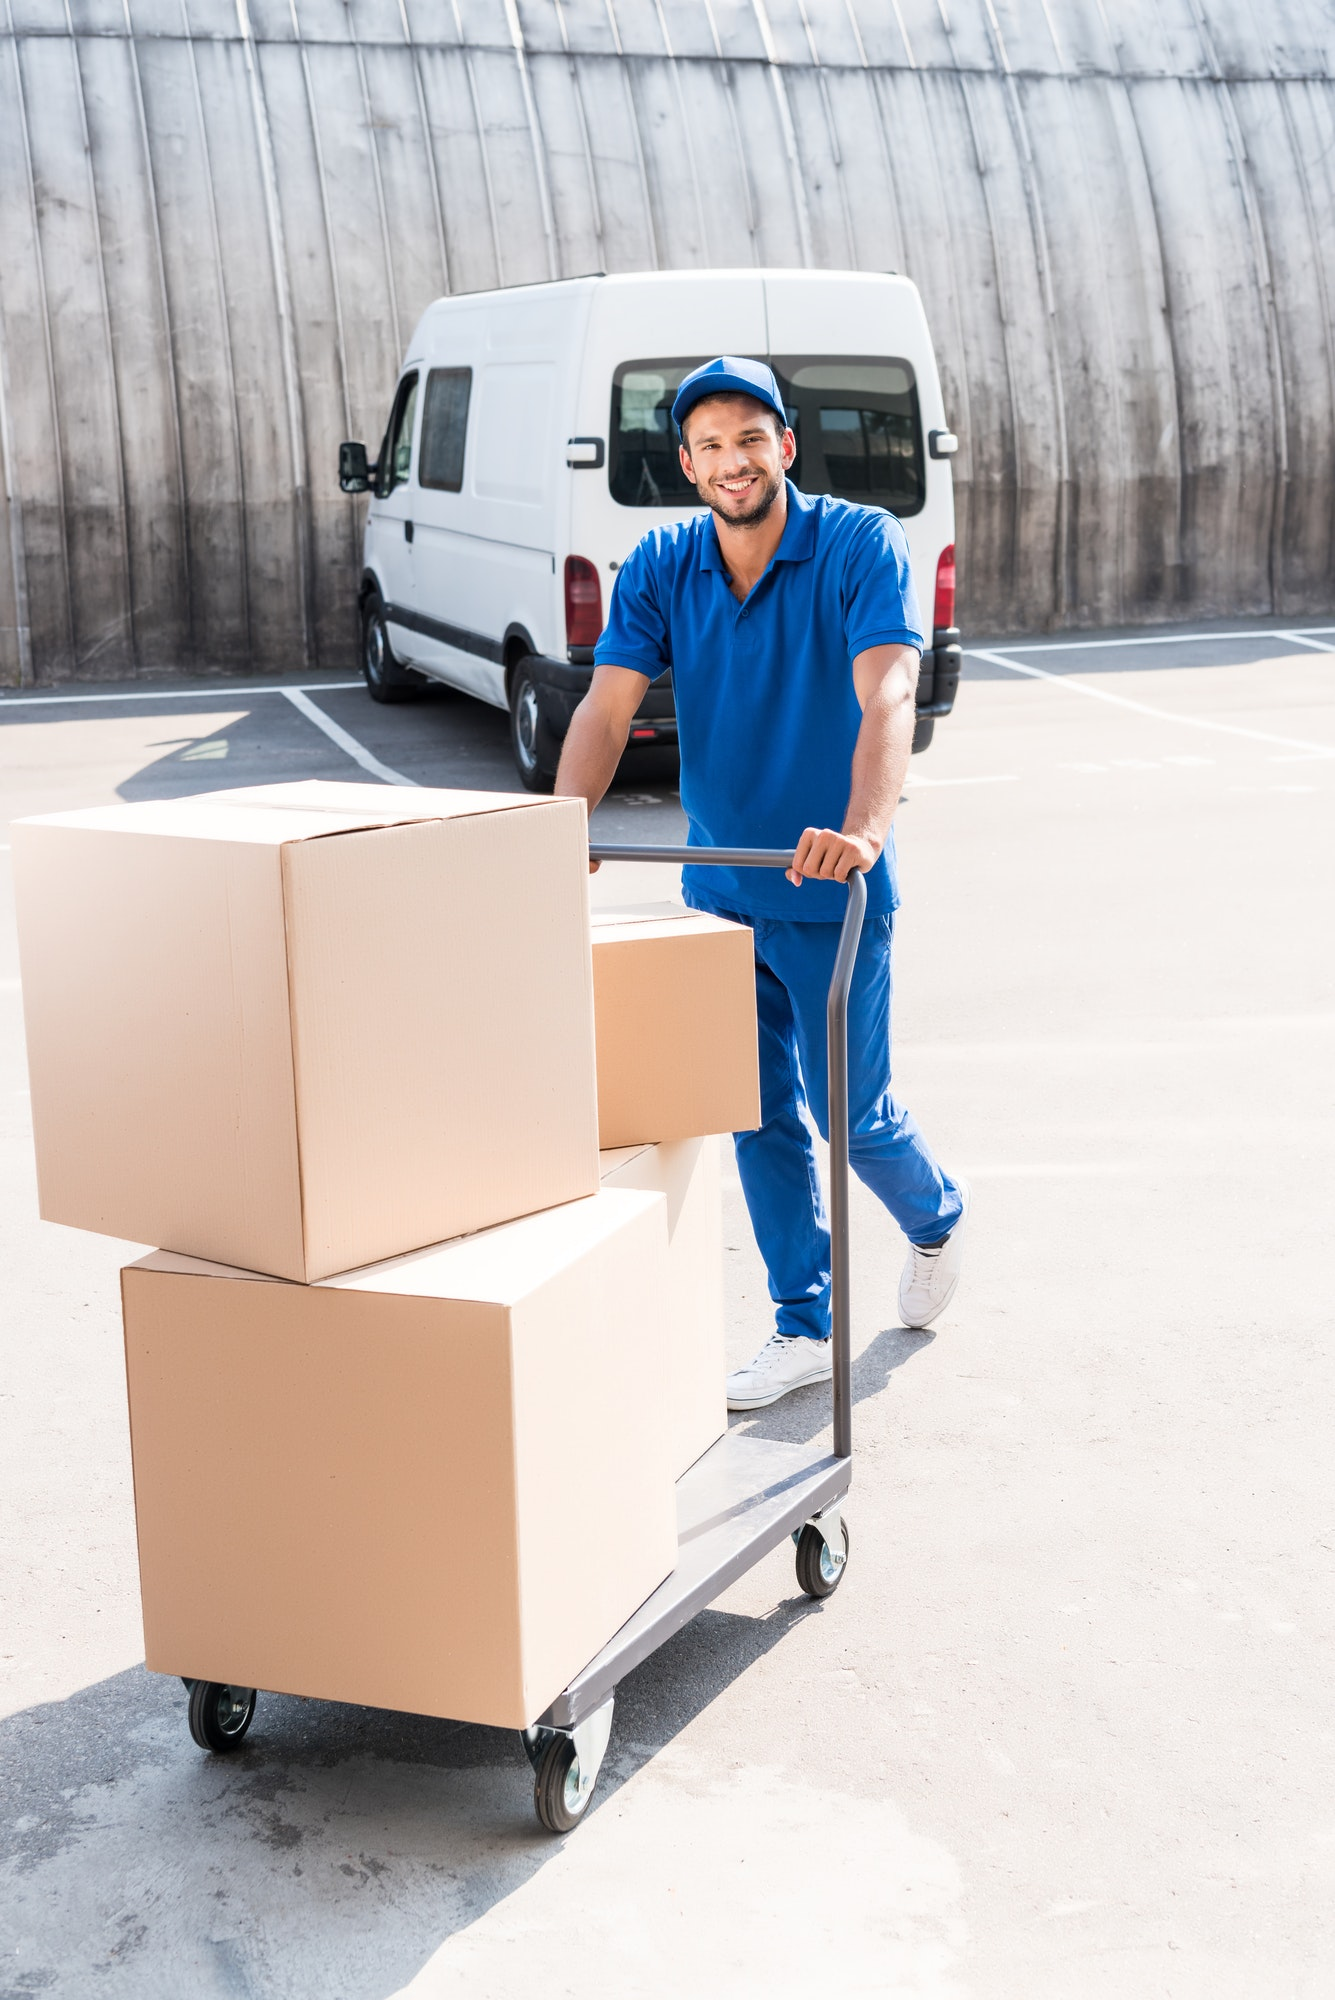 happy-delivery-man-with-cardboard-boxes-on-cart.jpg